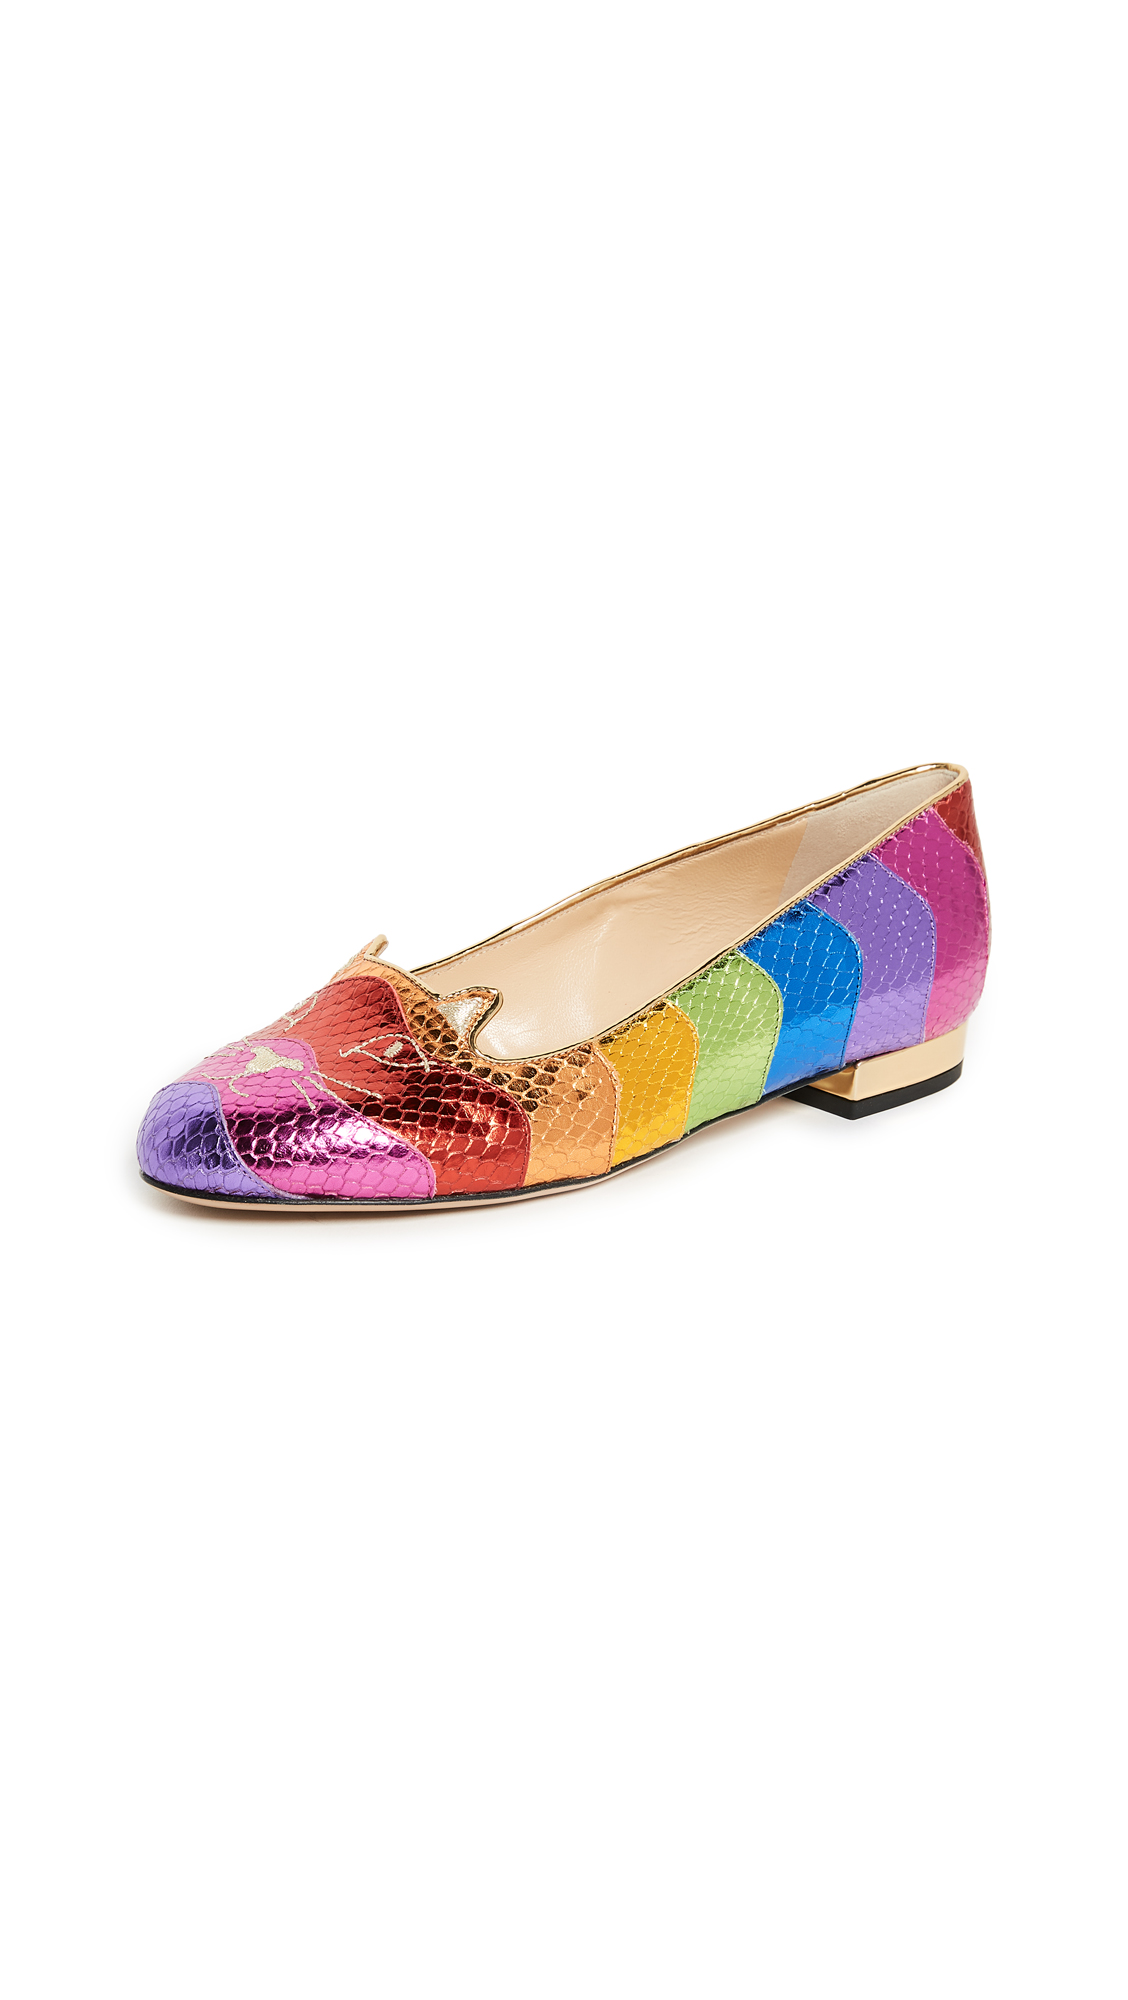 Charlotte Olympia Rainbow Kitty Flats - Multi